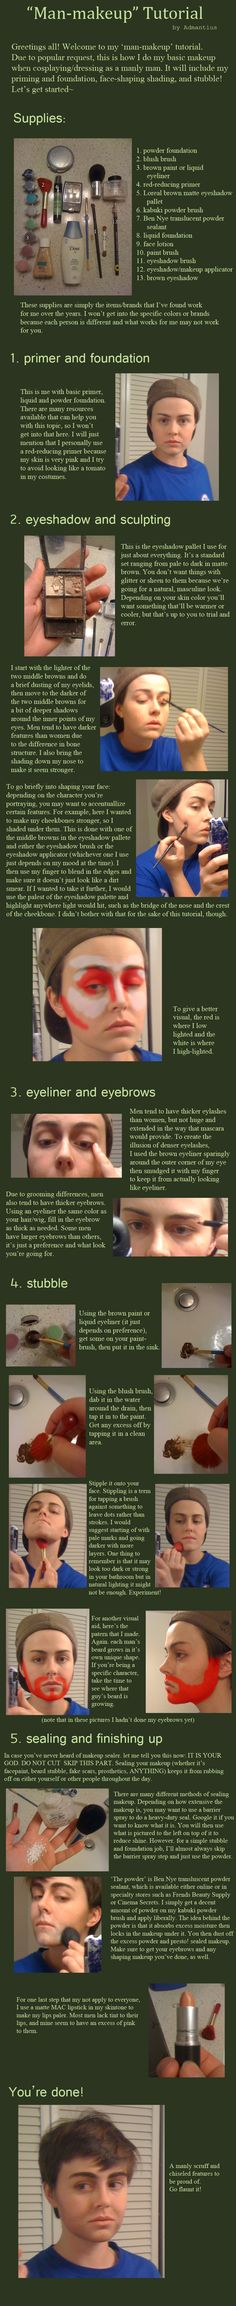 'Man-Makeup' and Stubble Tutorial by Admantius.deviantart.com on @deviantART